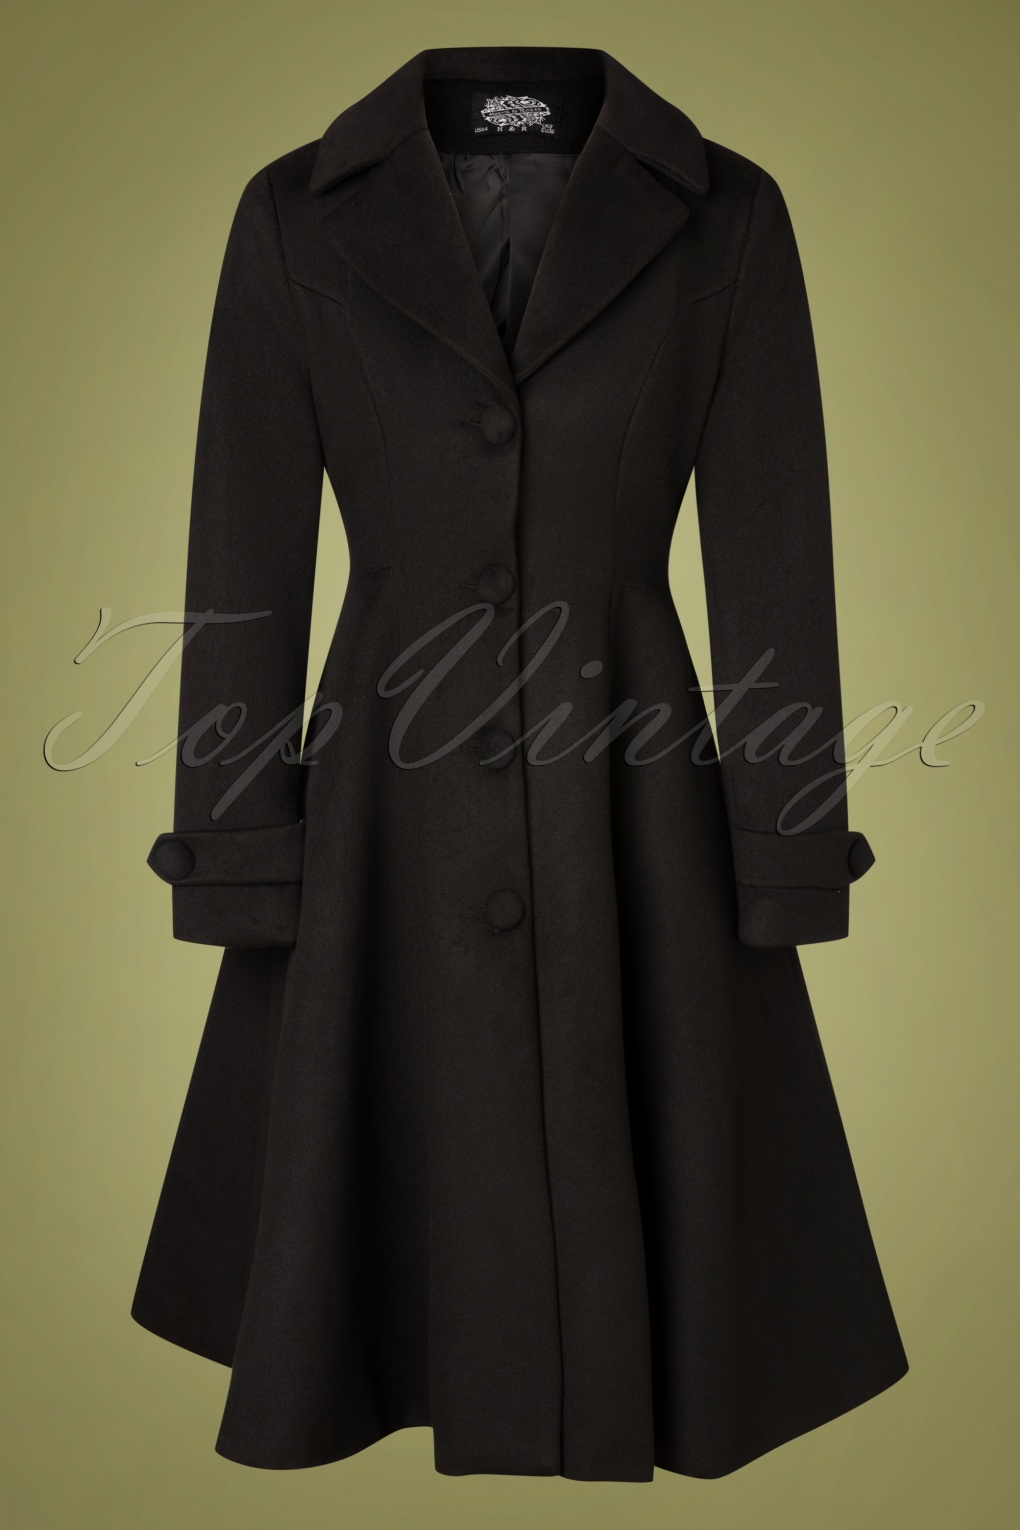 1950s Jackets, Coats, Bolero | Swing, Pin Up, Rockabilly 50s Pheobe Swing Coat in Black £68.15 AT vintagedancer.com